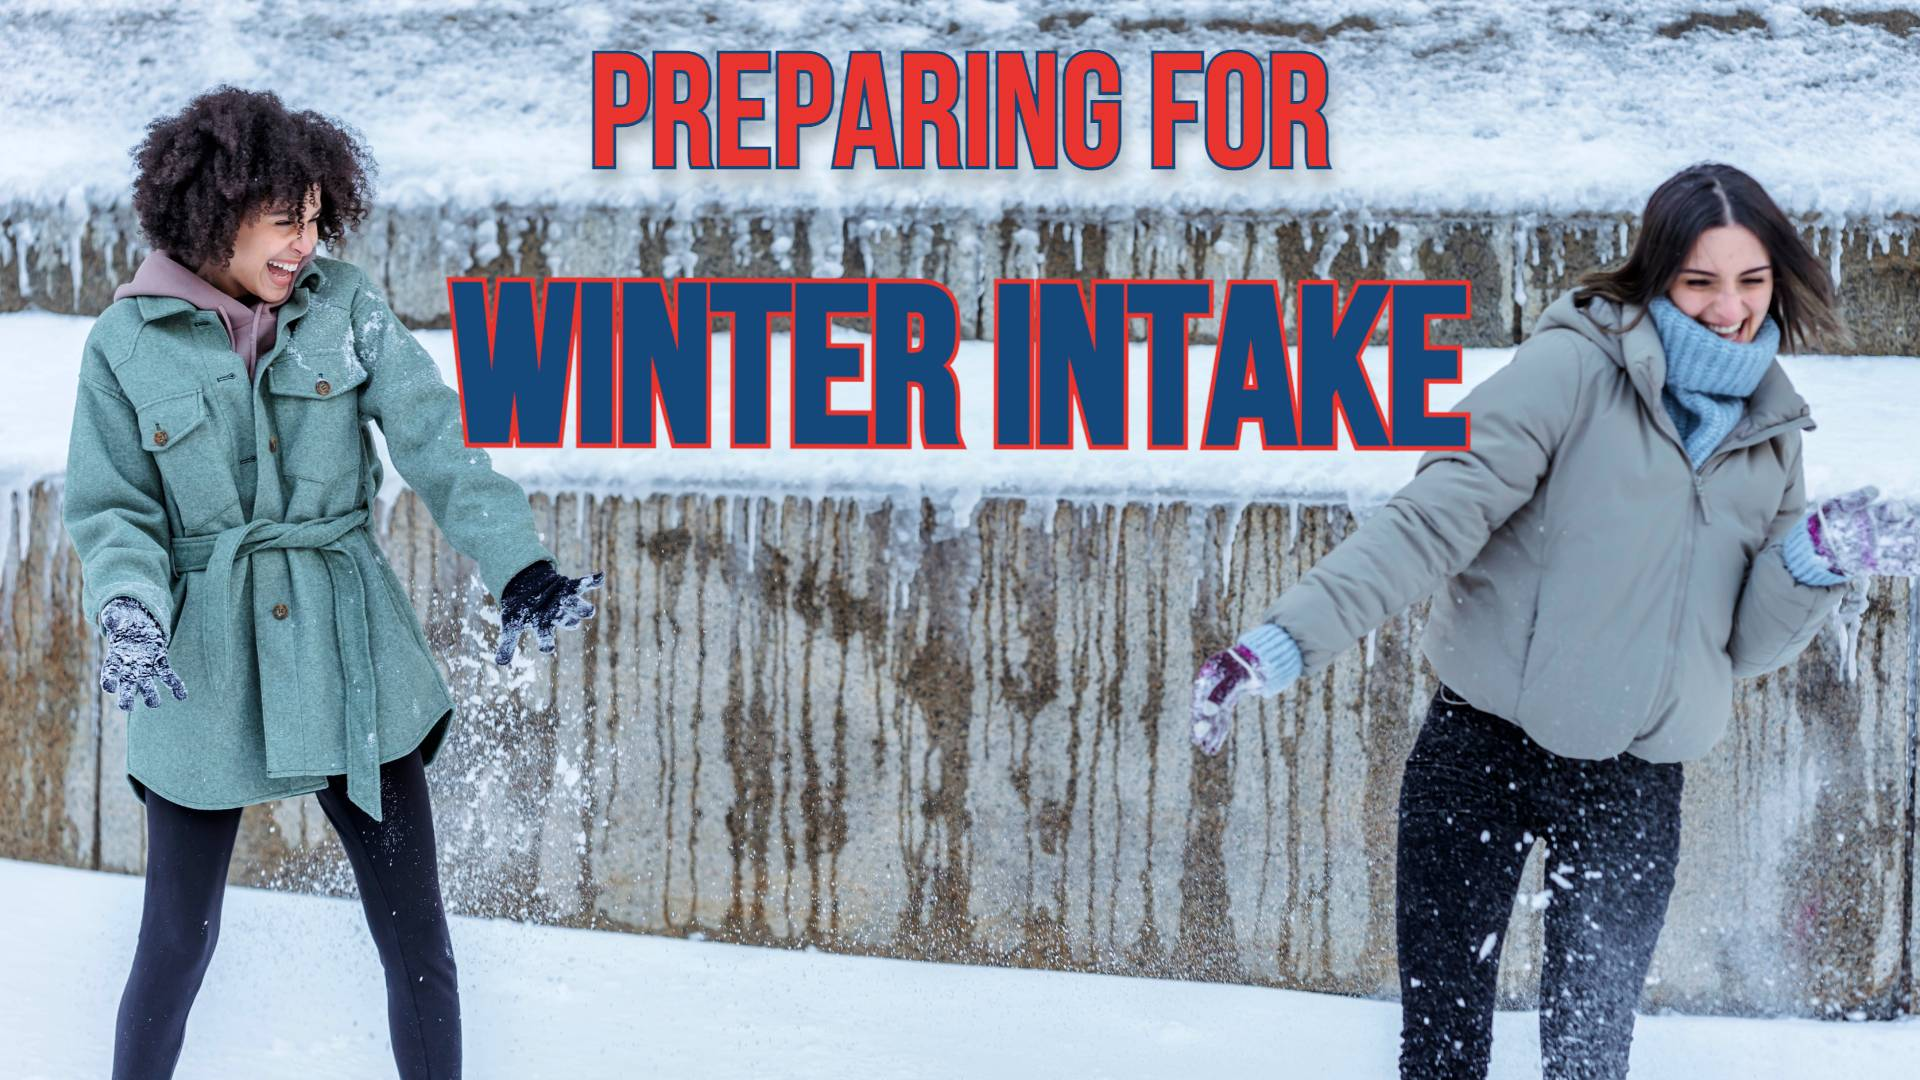 """Two women having a snowball fight in a snowy landscape.Text reads """"Preparing for winter intake"""""""